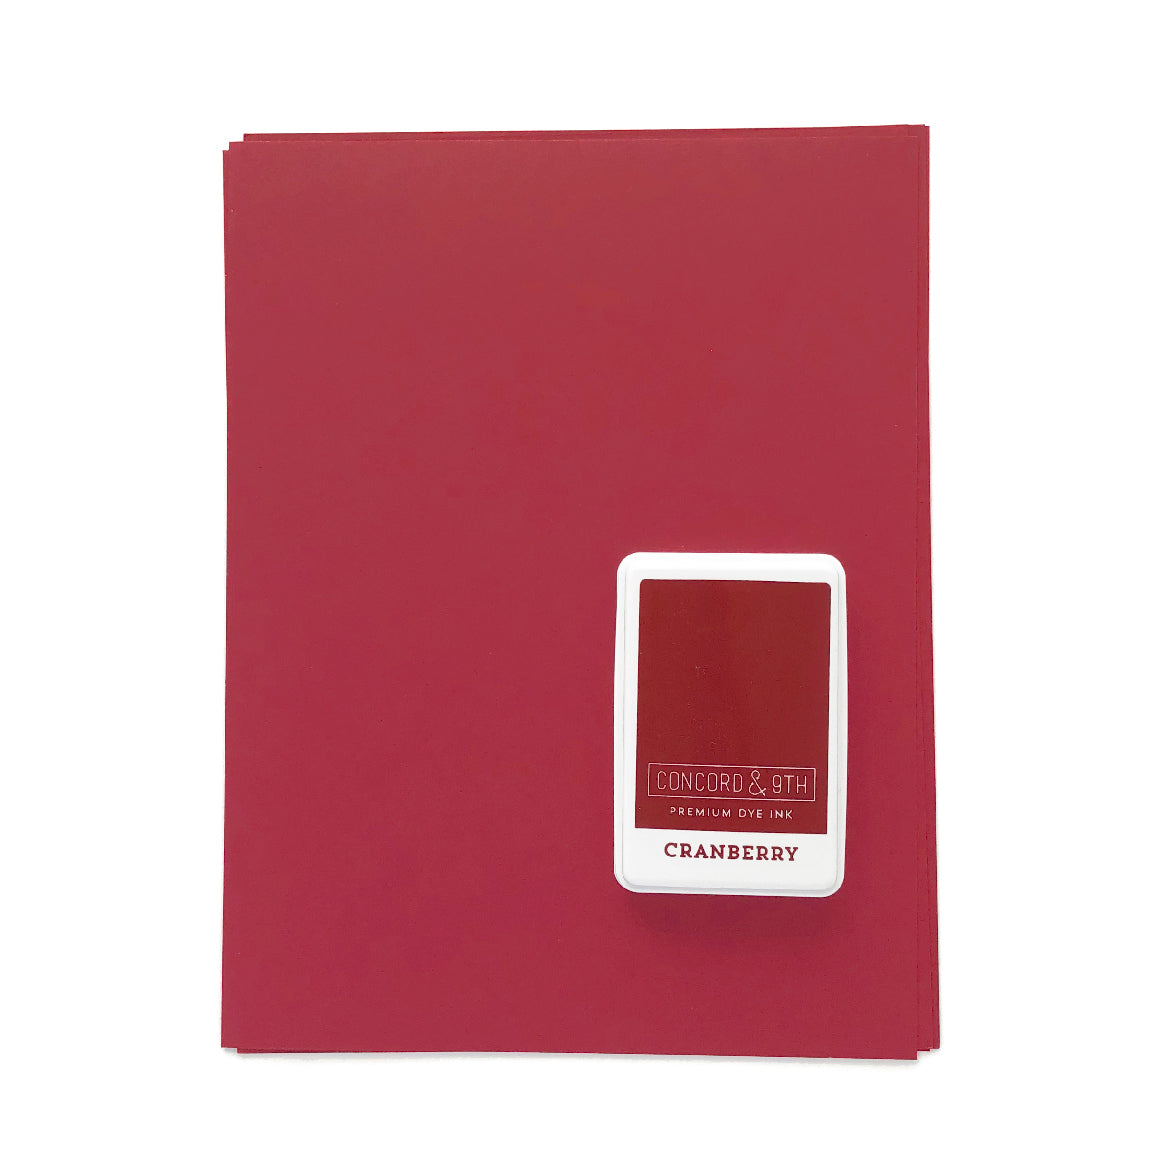 Cranberry Ink Pad & Cardstock Bundle